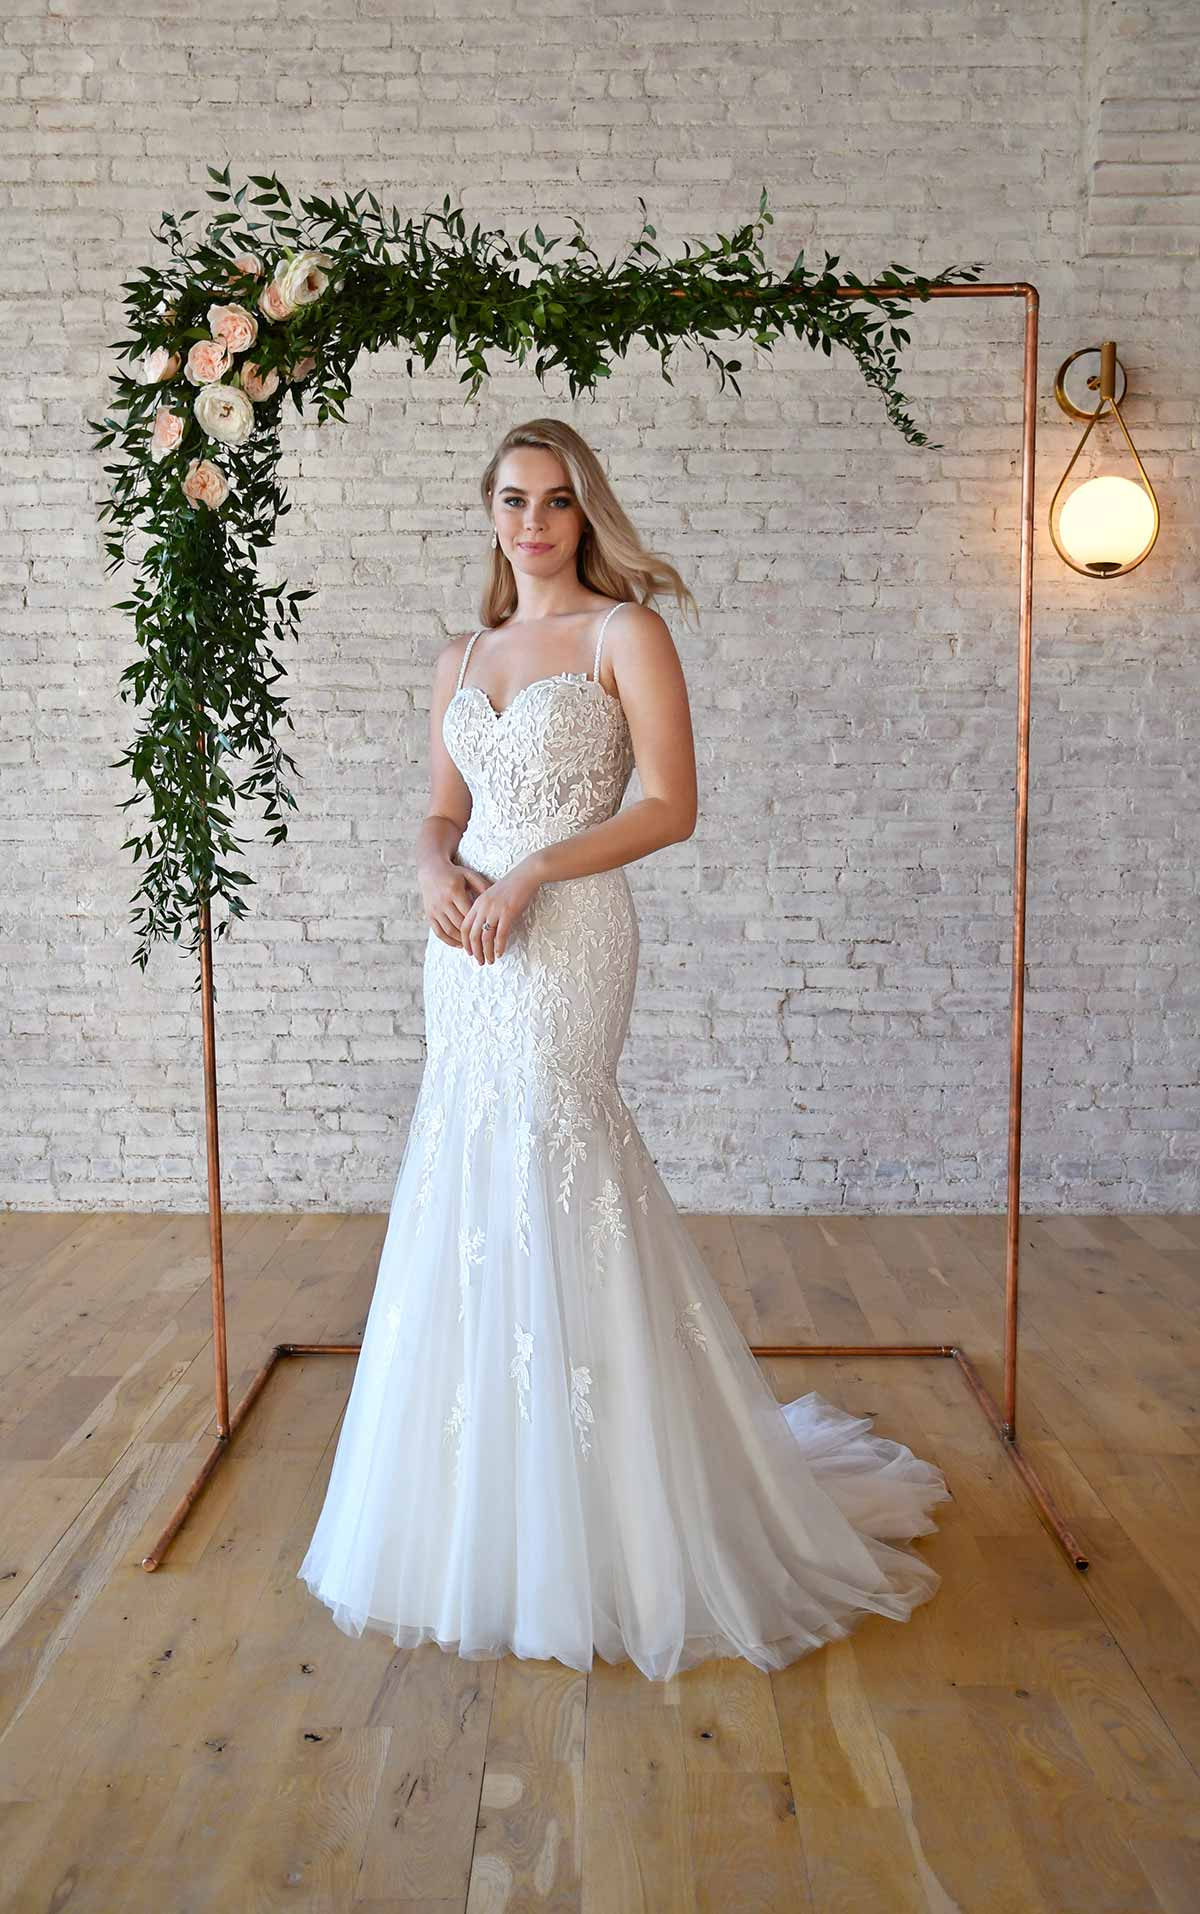 7337 Lace Fit-and-Flare Sweetheart Neckline Wedding Dress with Delicate Straps by Stella York